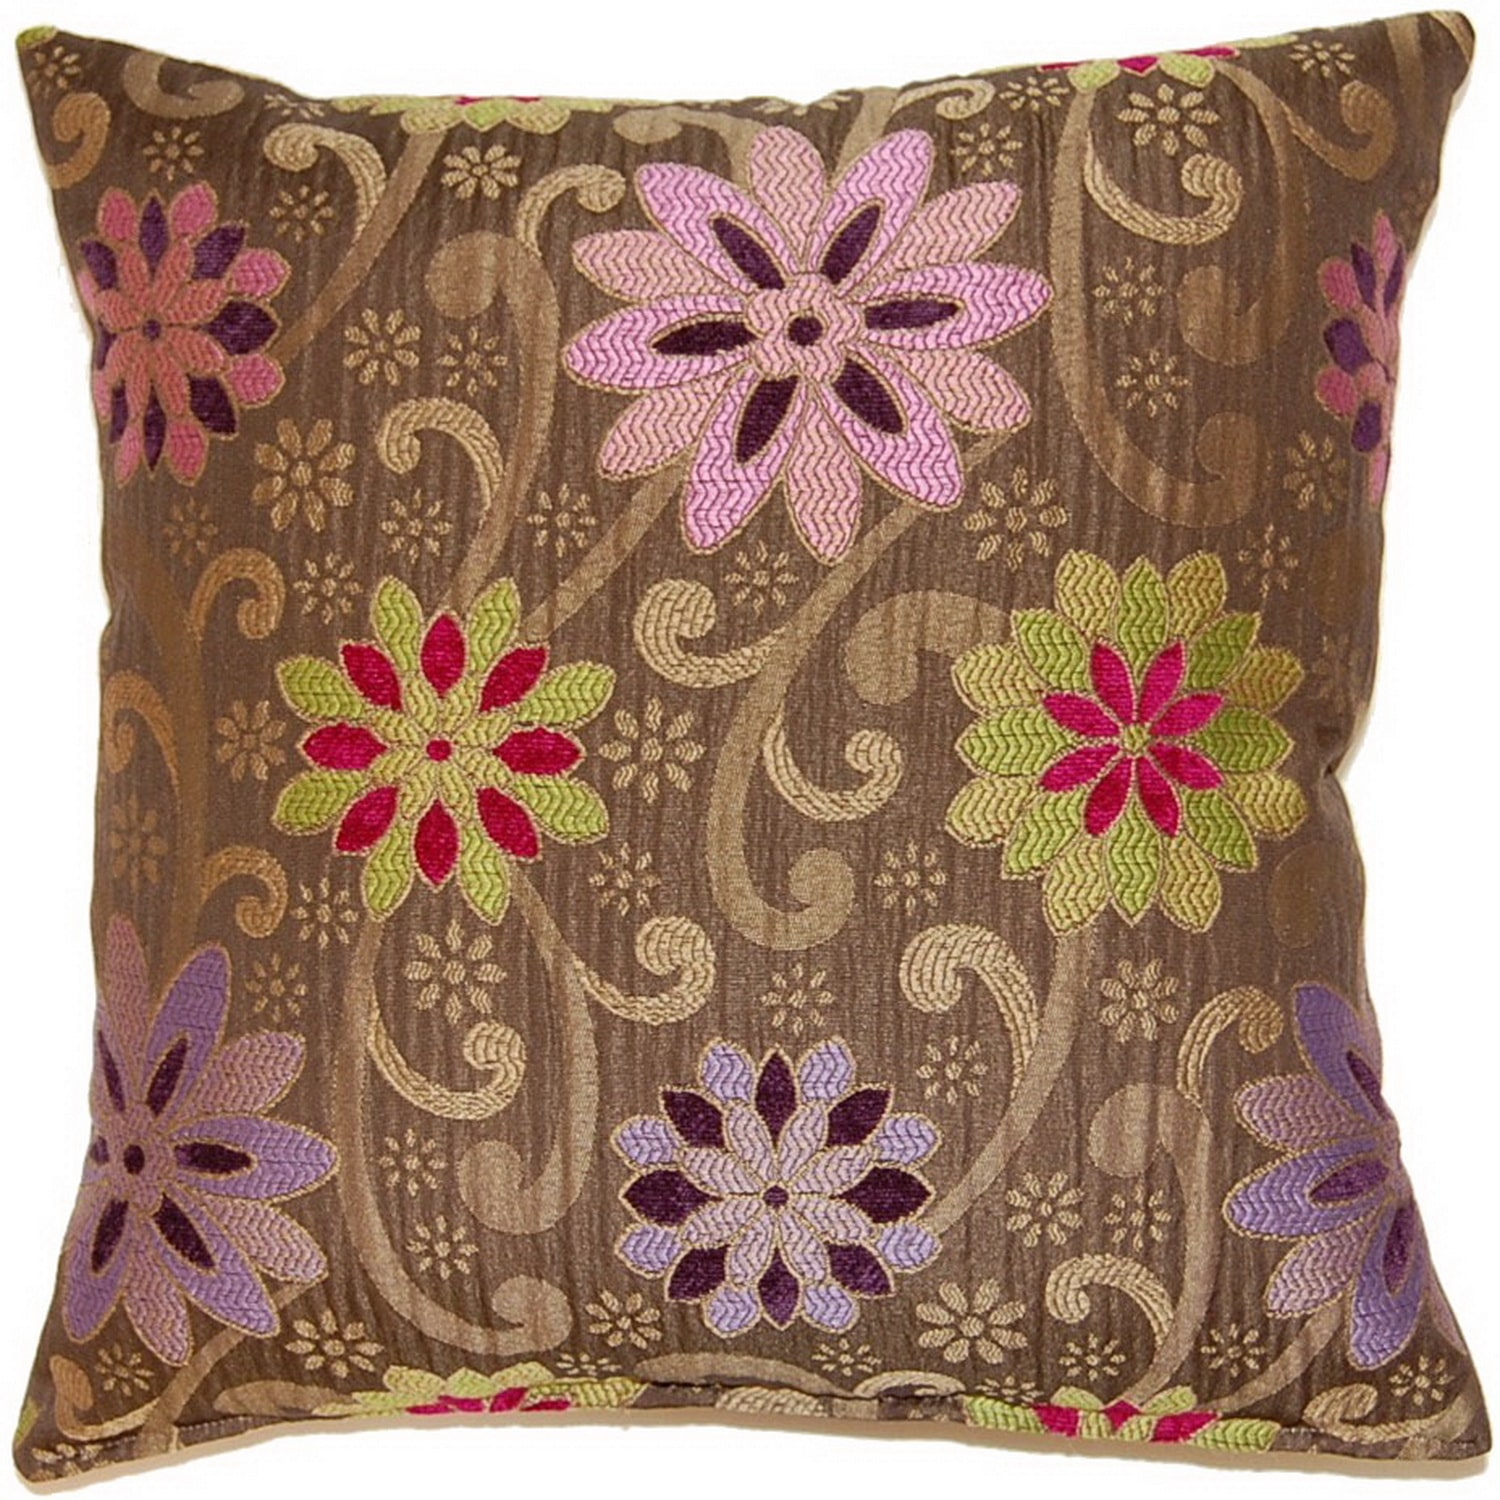 Fox Hill Trading Kaleidoscope Multi 17-inch Throw Pillows (Set of 2)